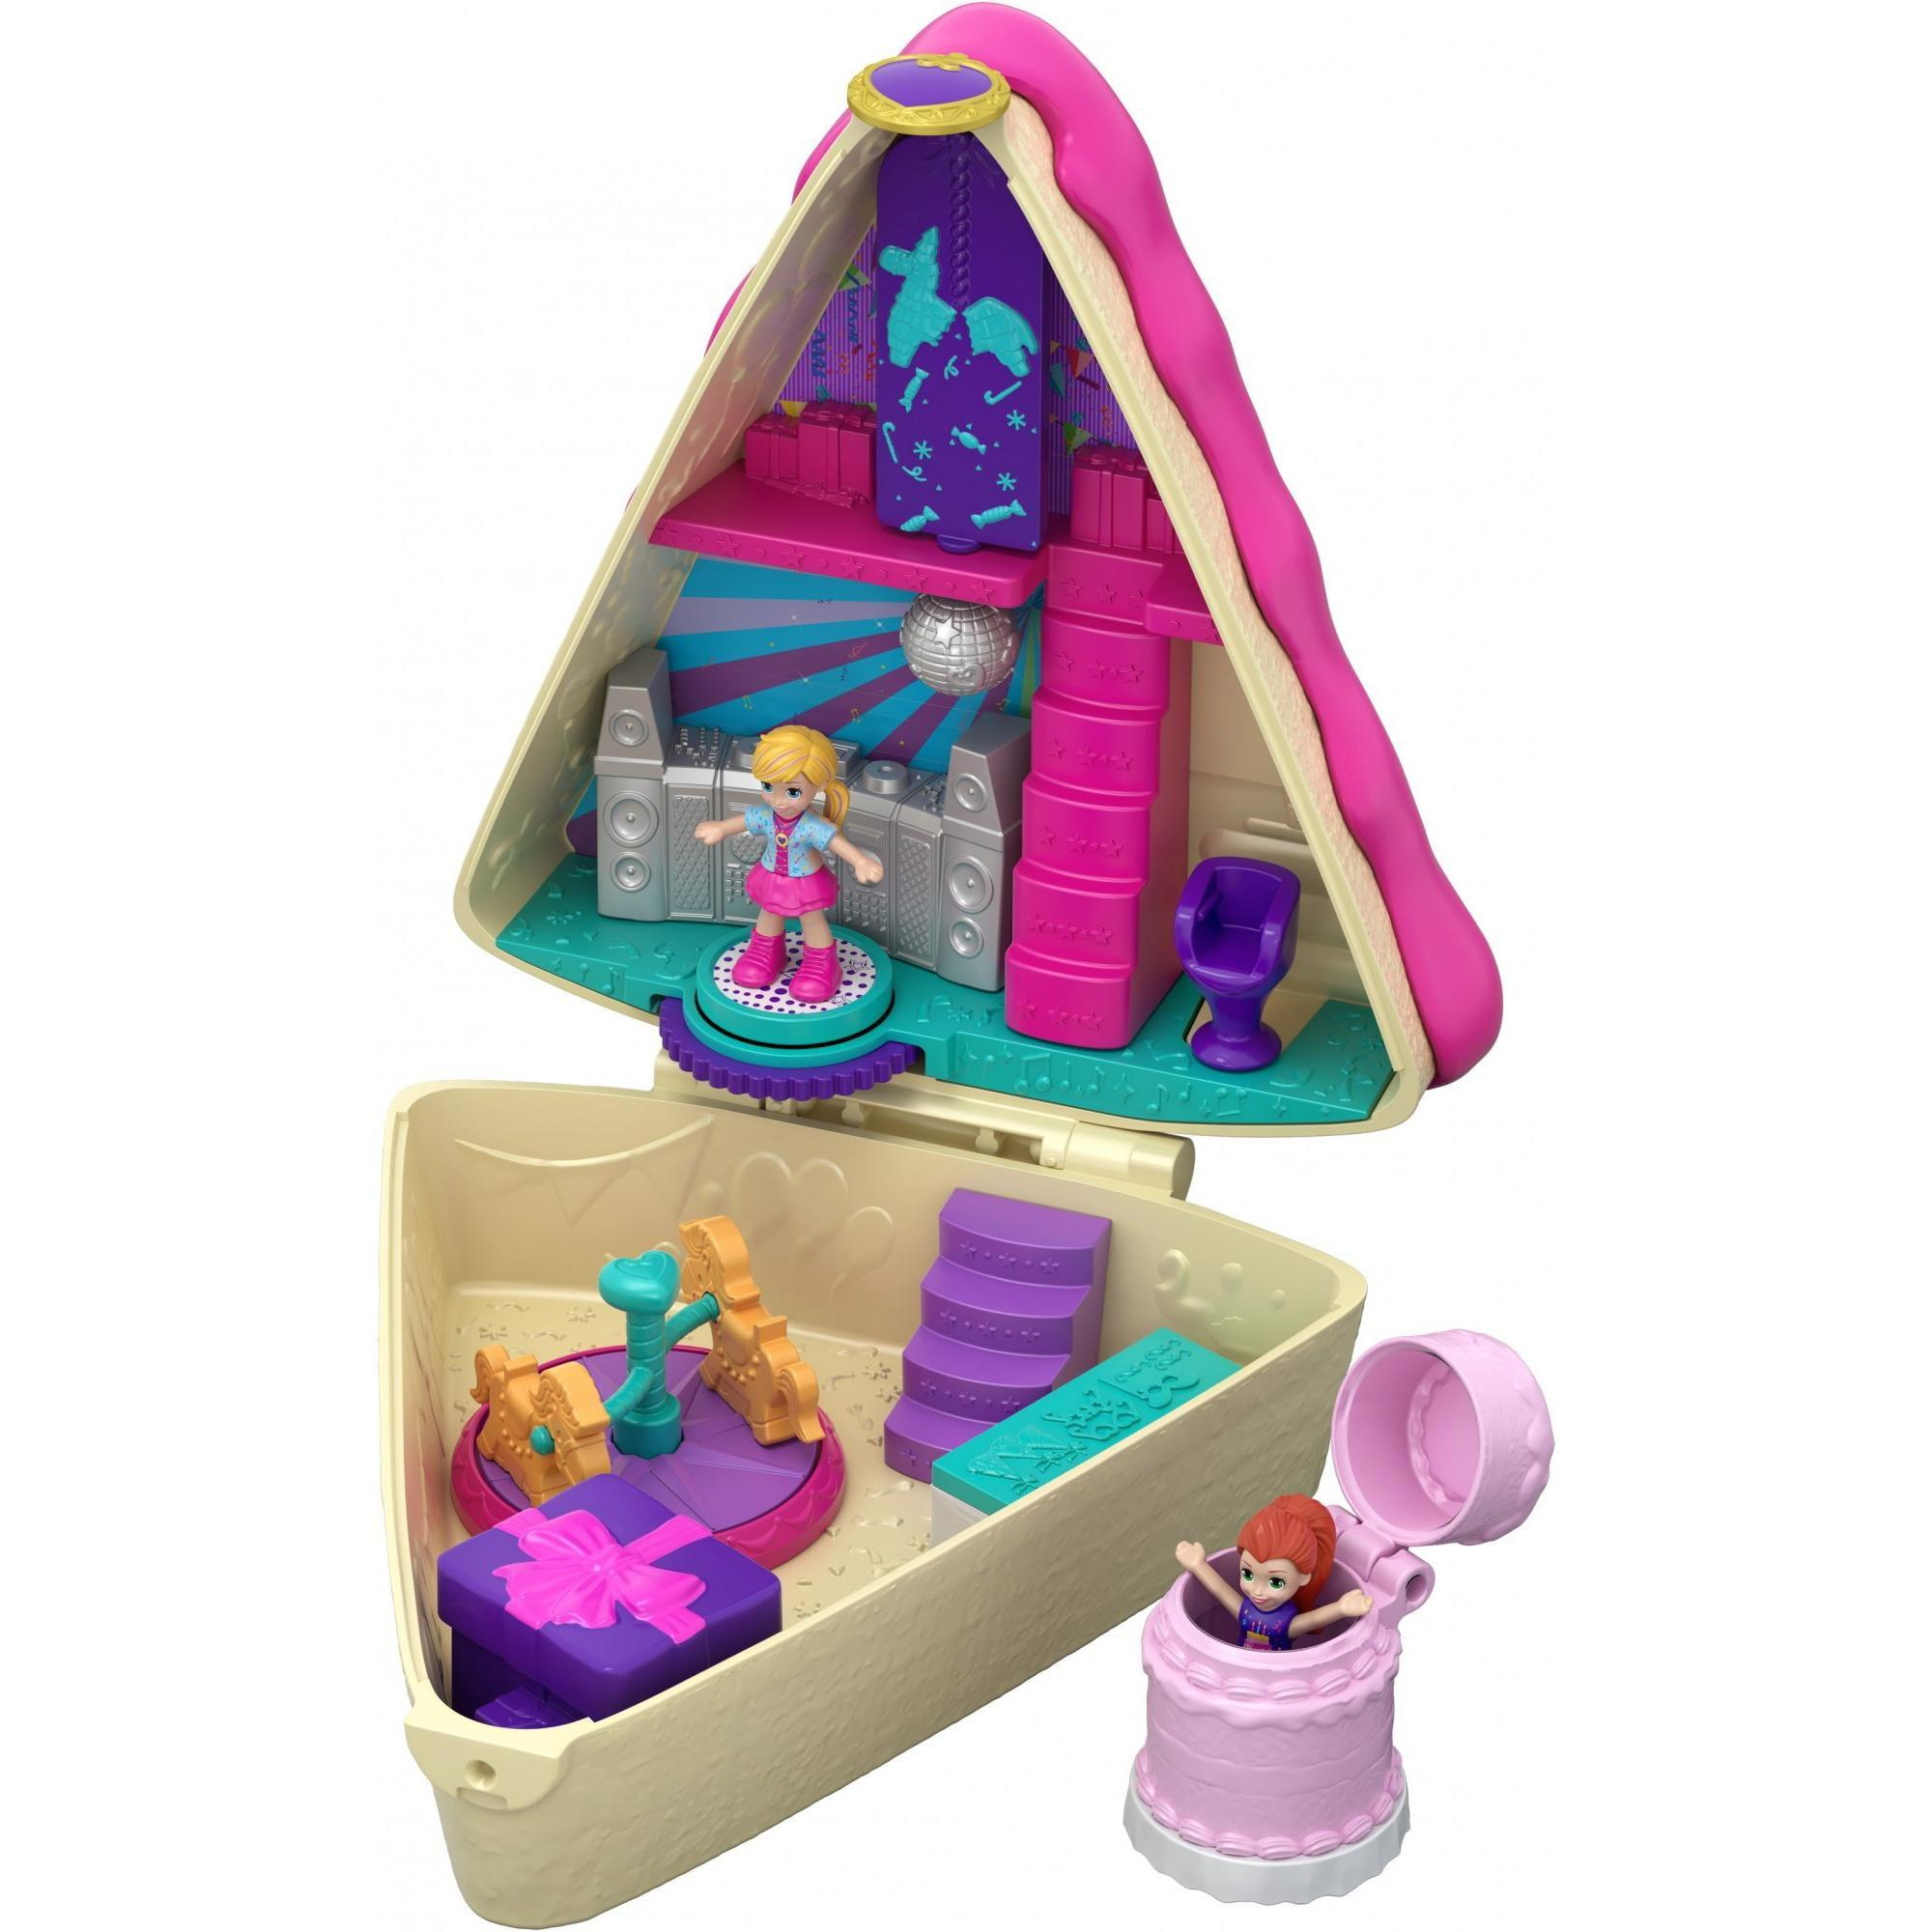 Admirable Polly Pocket Birthday Cake Bash Compact With 2 Dolls Accessories Funny Birthday Cards Online Elaedamsfinfo